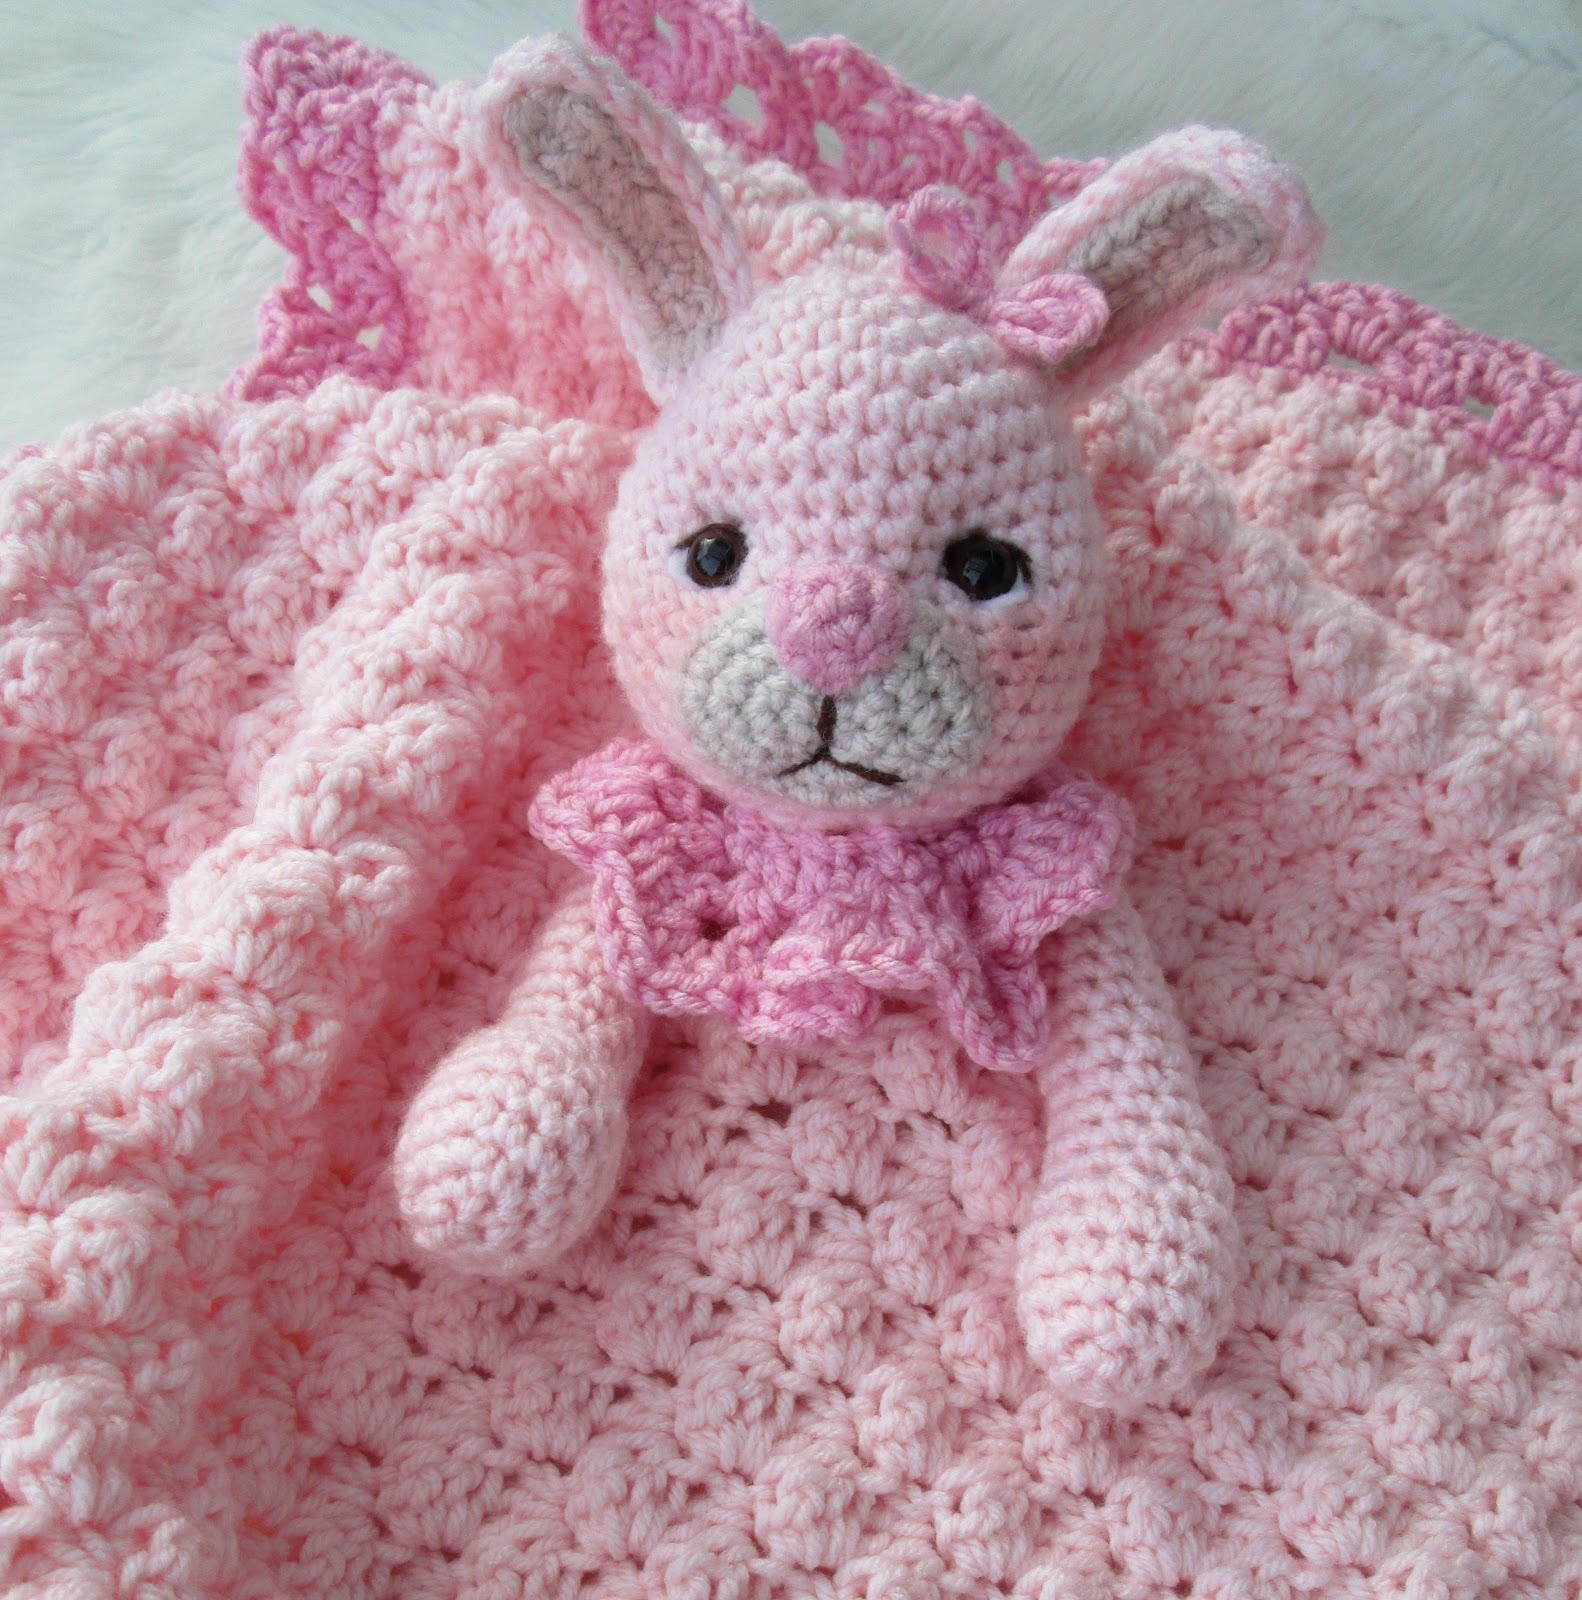 Bunny Blanket Knitting Pattern : Teris Blog: New Bunny Huggy Blanket Pattern